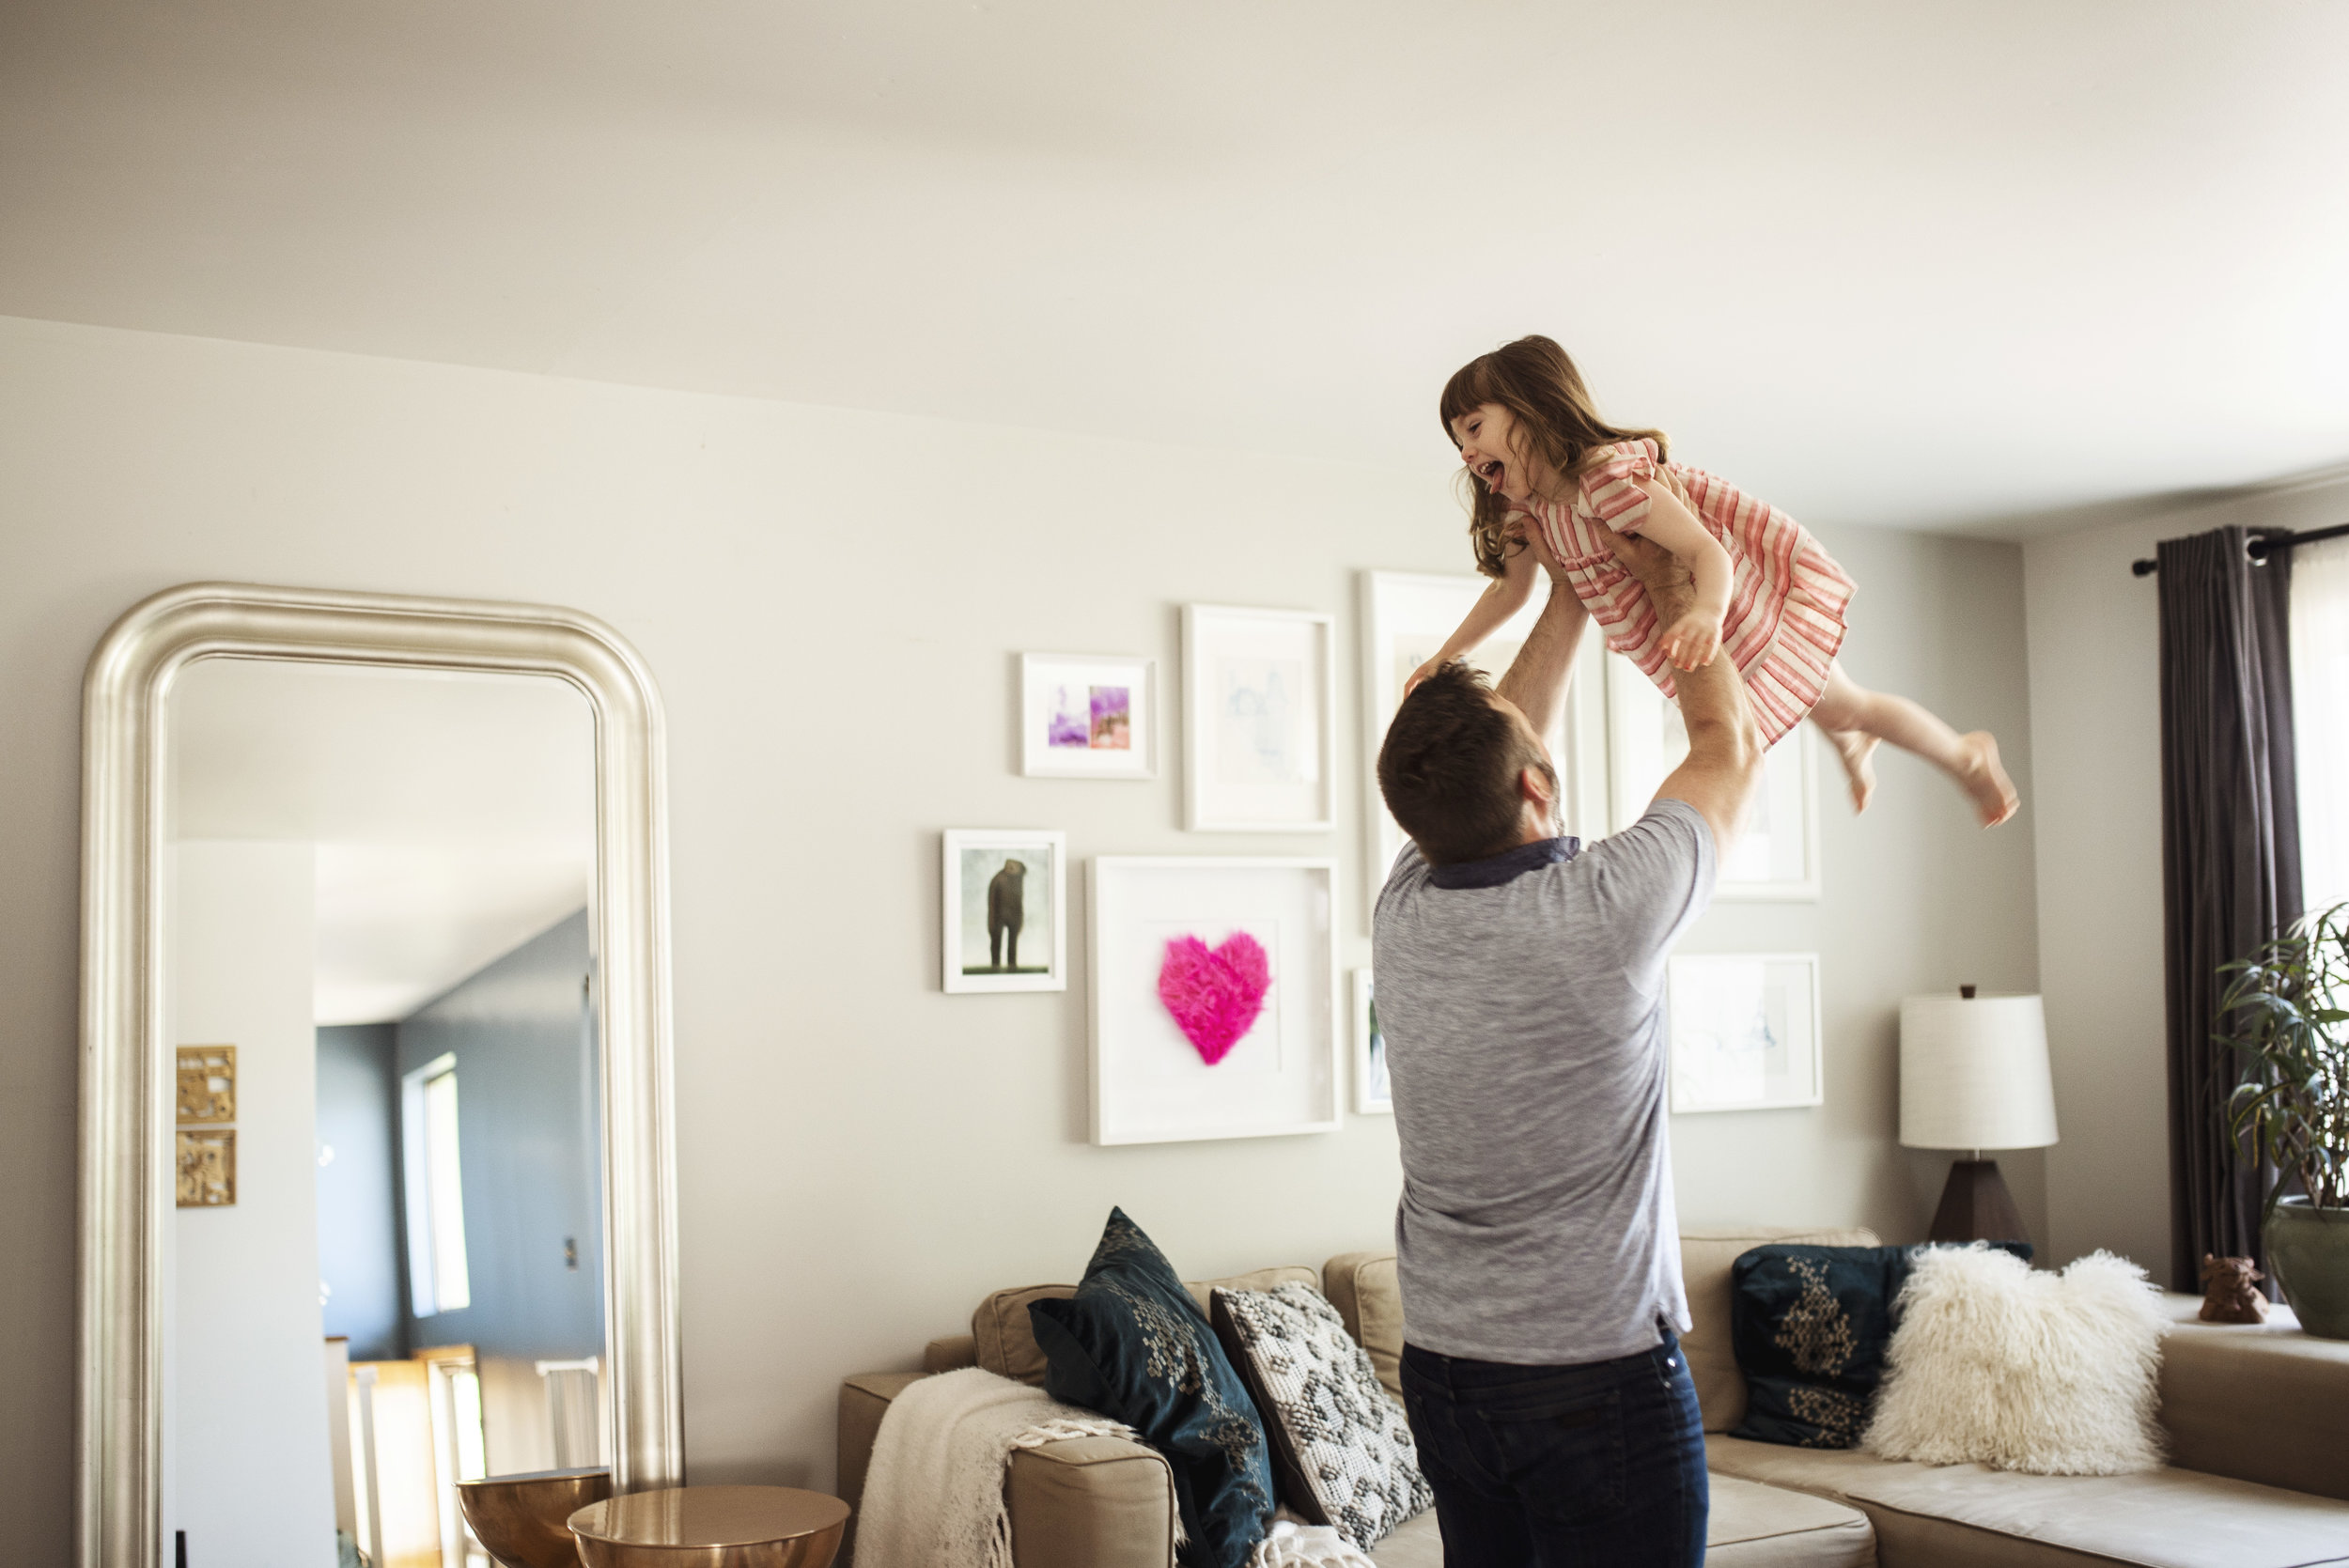 Family photographer Everett dad is flying little girl in the air